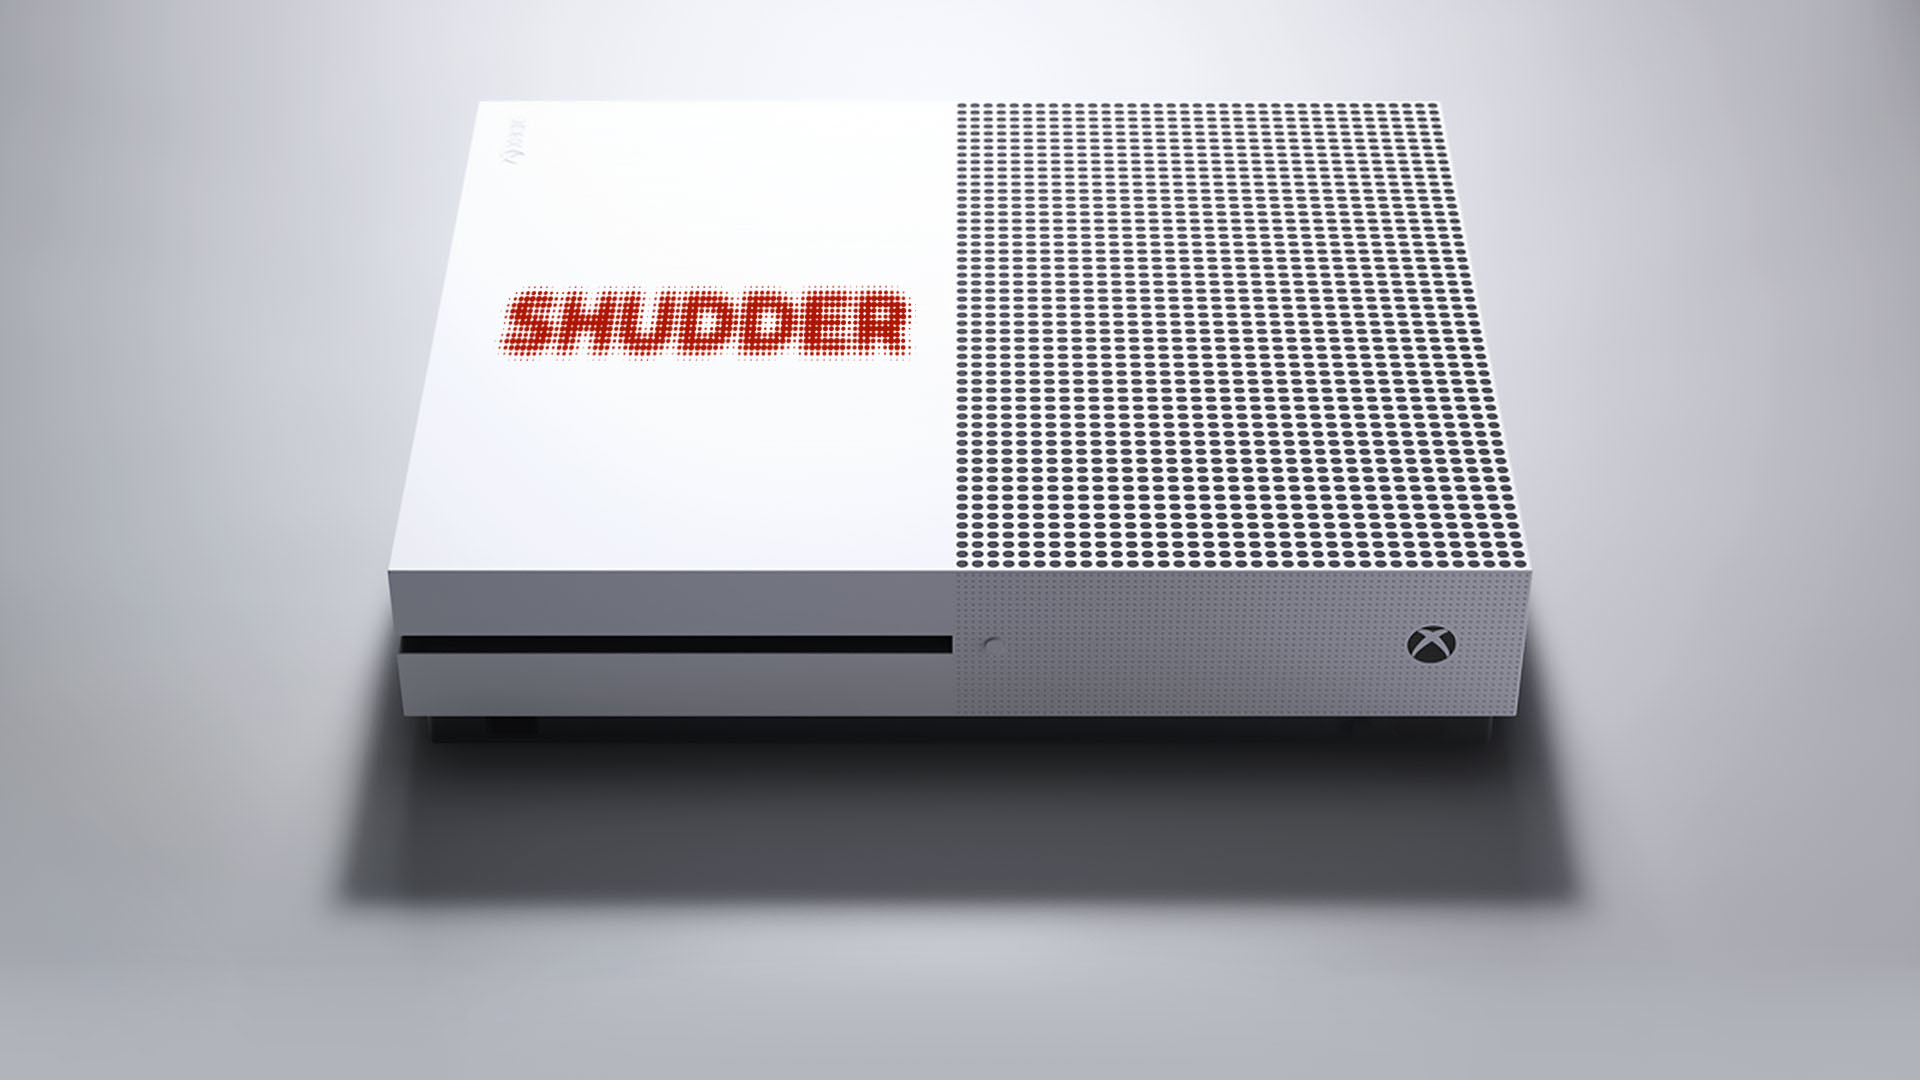 Shudder on Xbox One